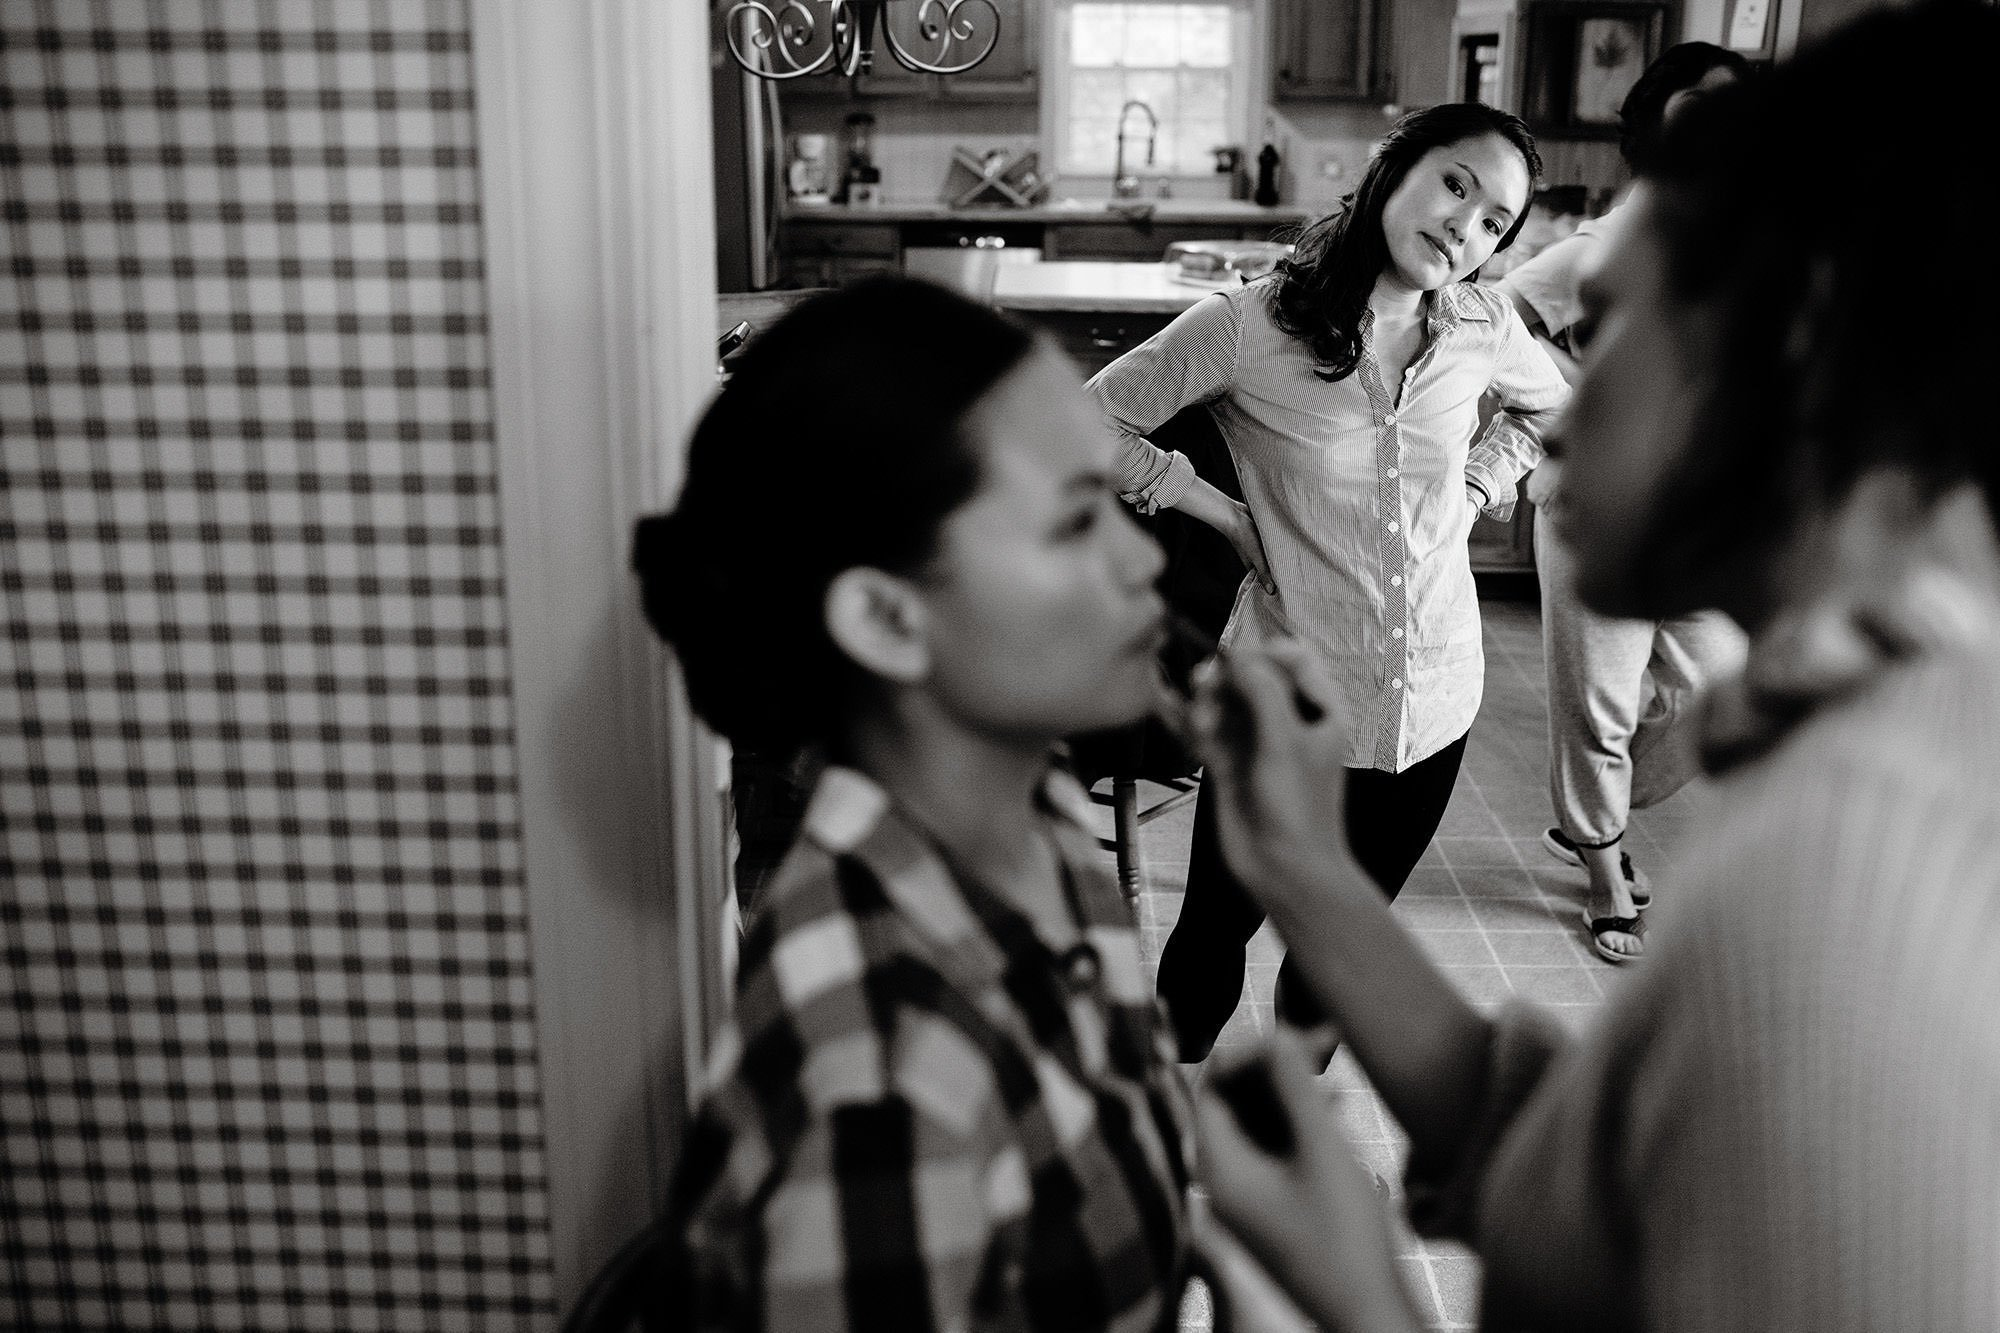 A bridesmaid watches as makeup is applied.